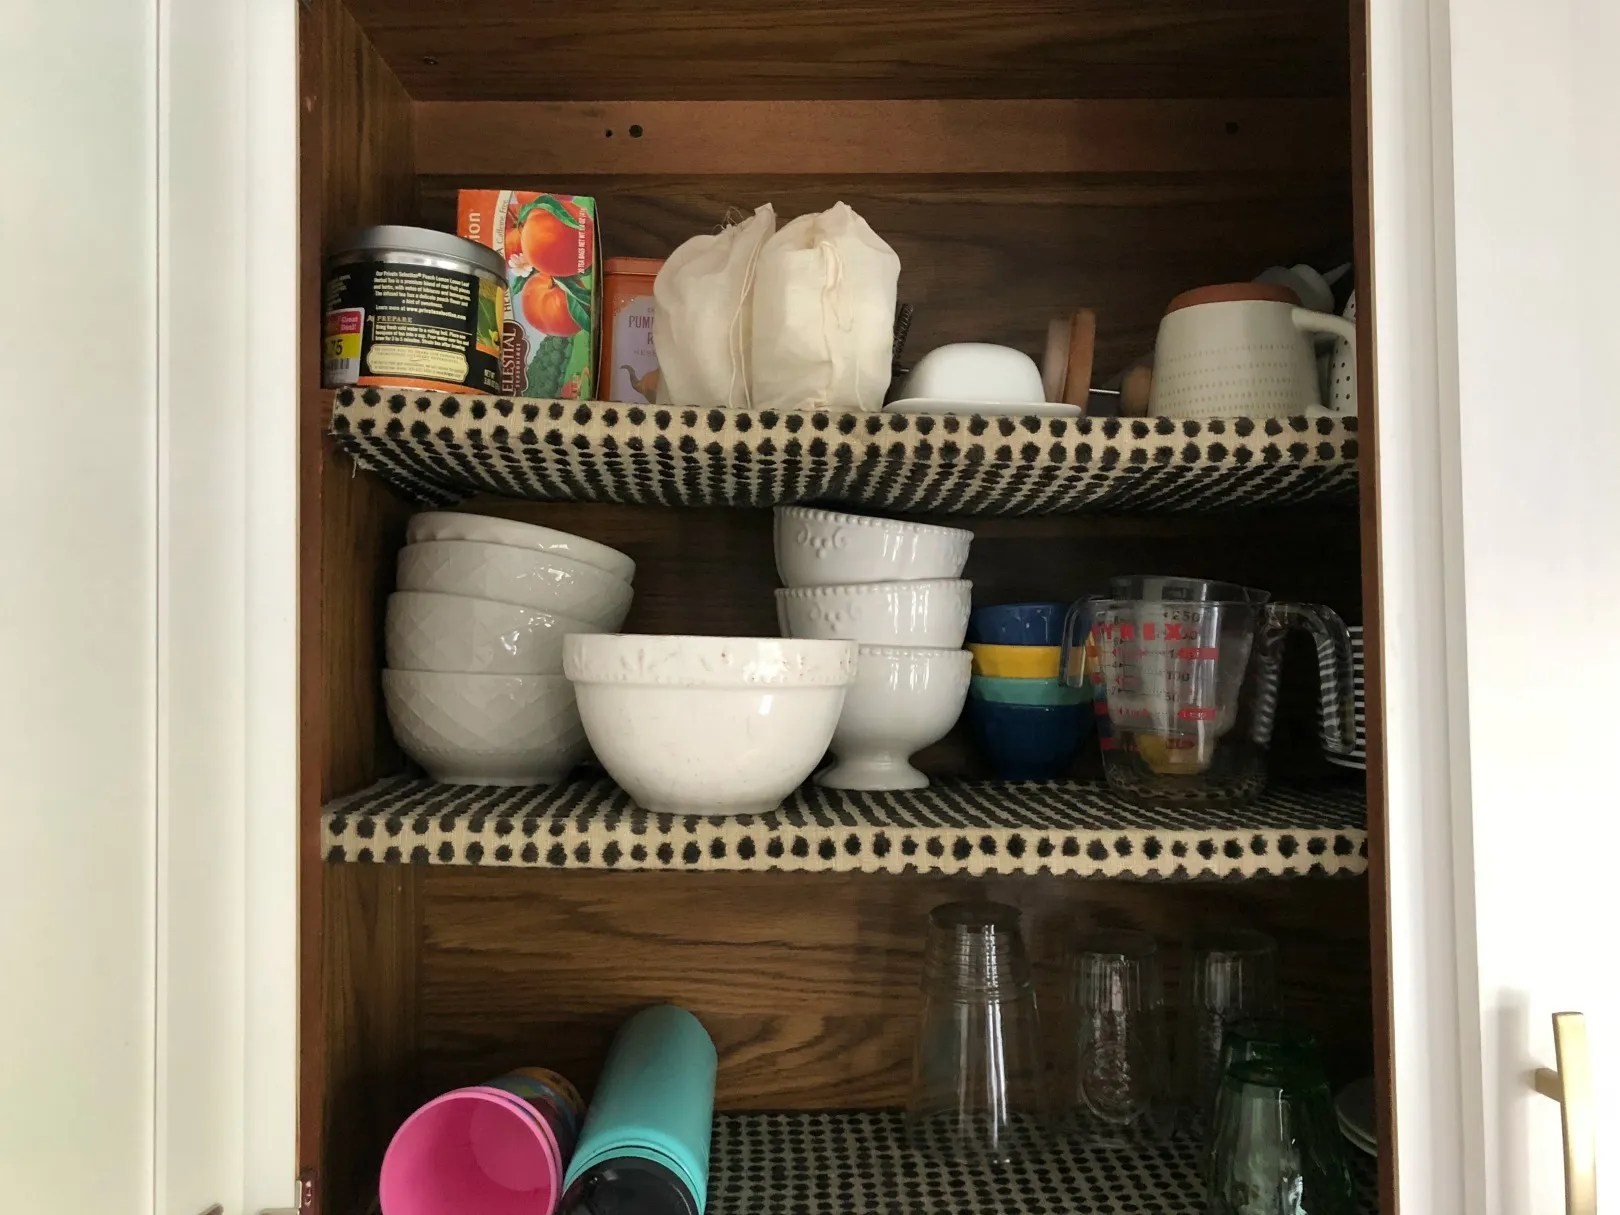 BEFORE Kitchen Organizing Tips - Small Space Living